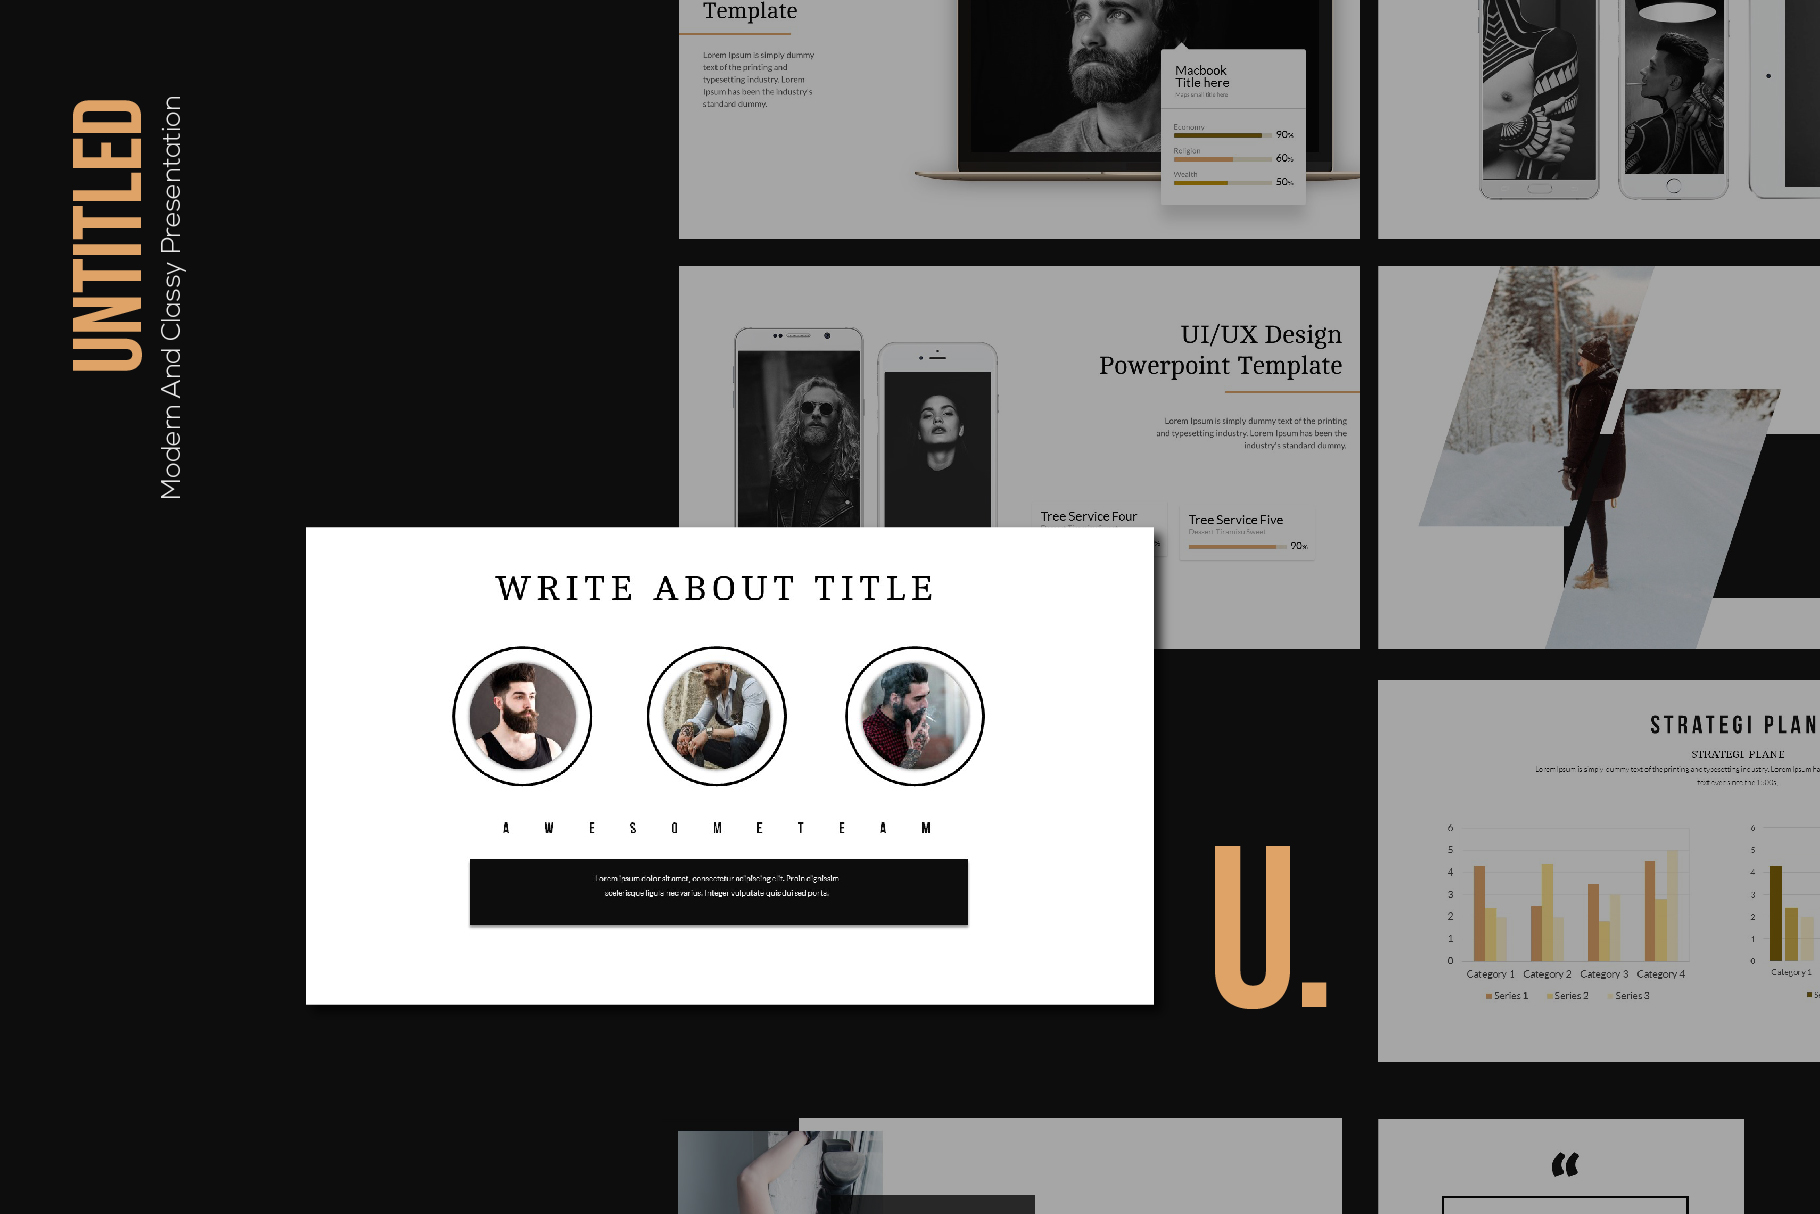 Untitled Business Keynote Template example image 7